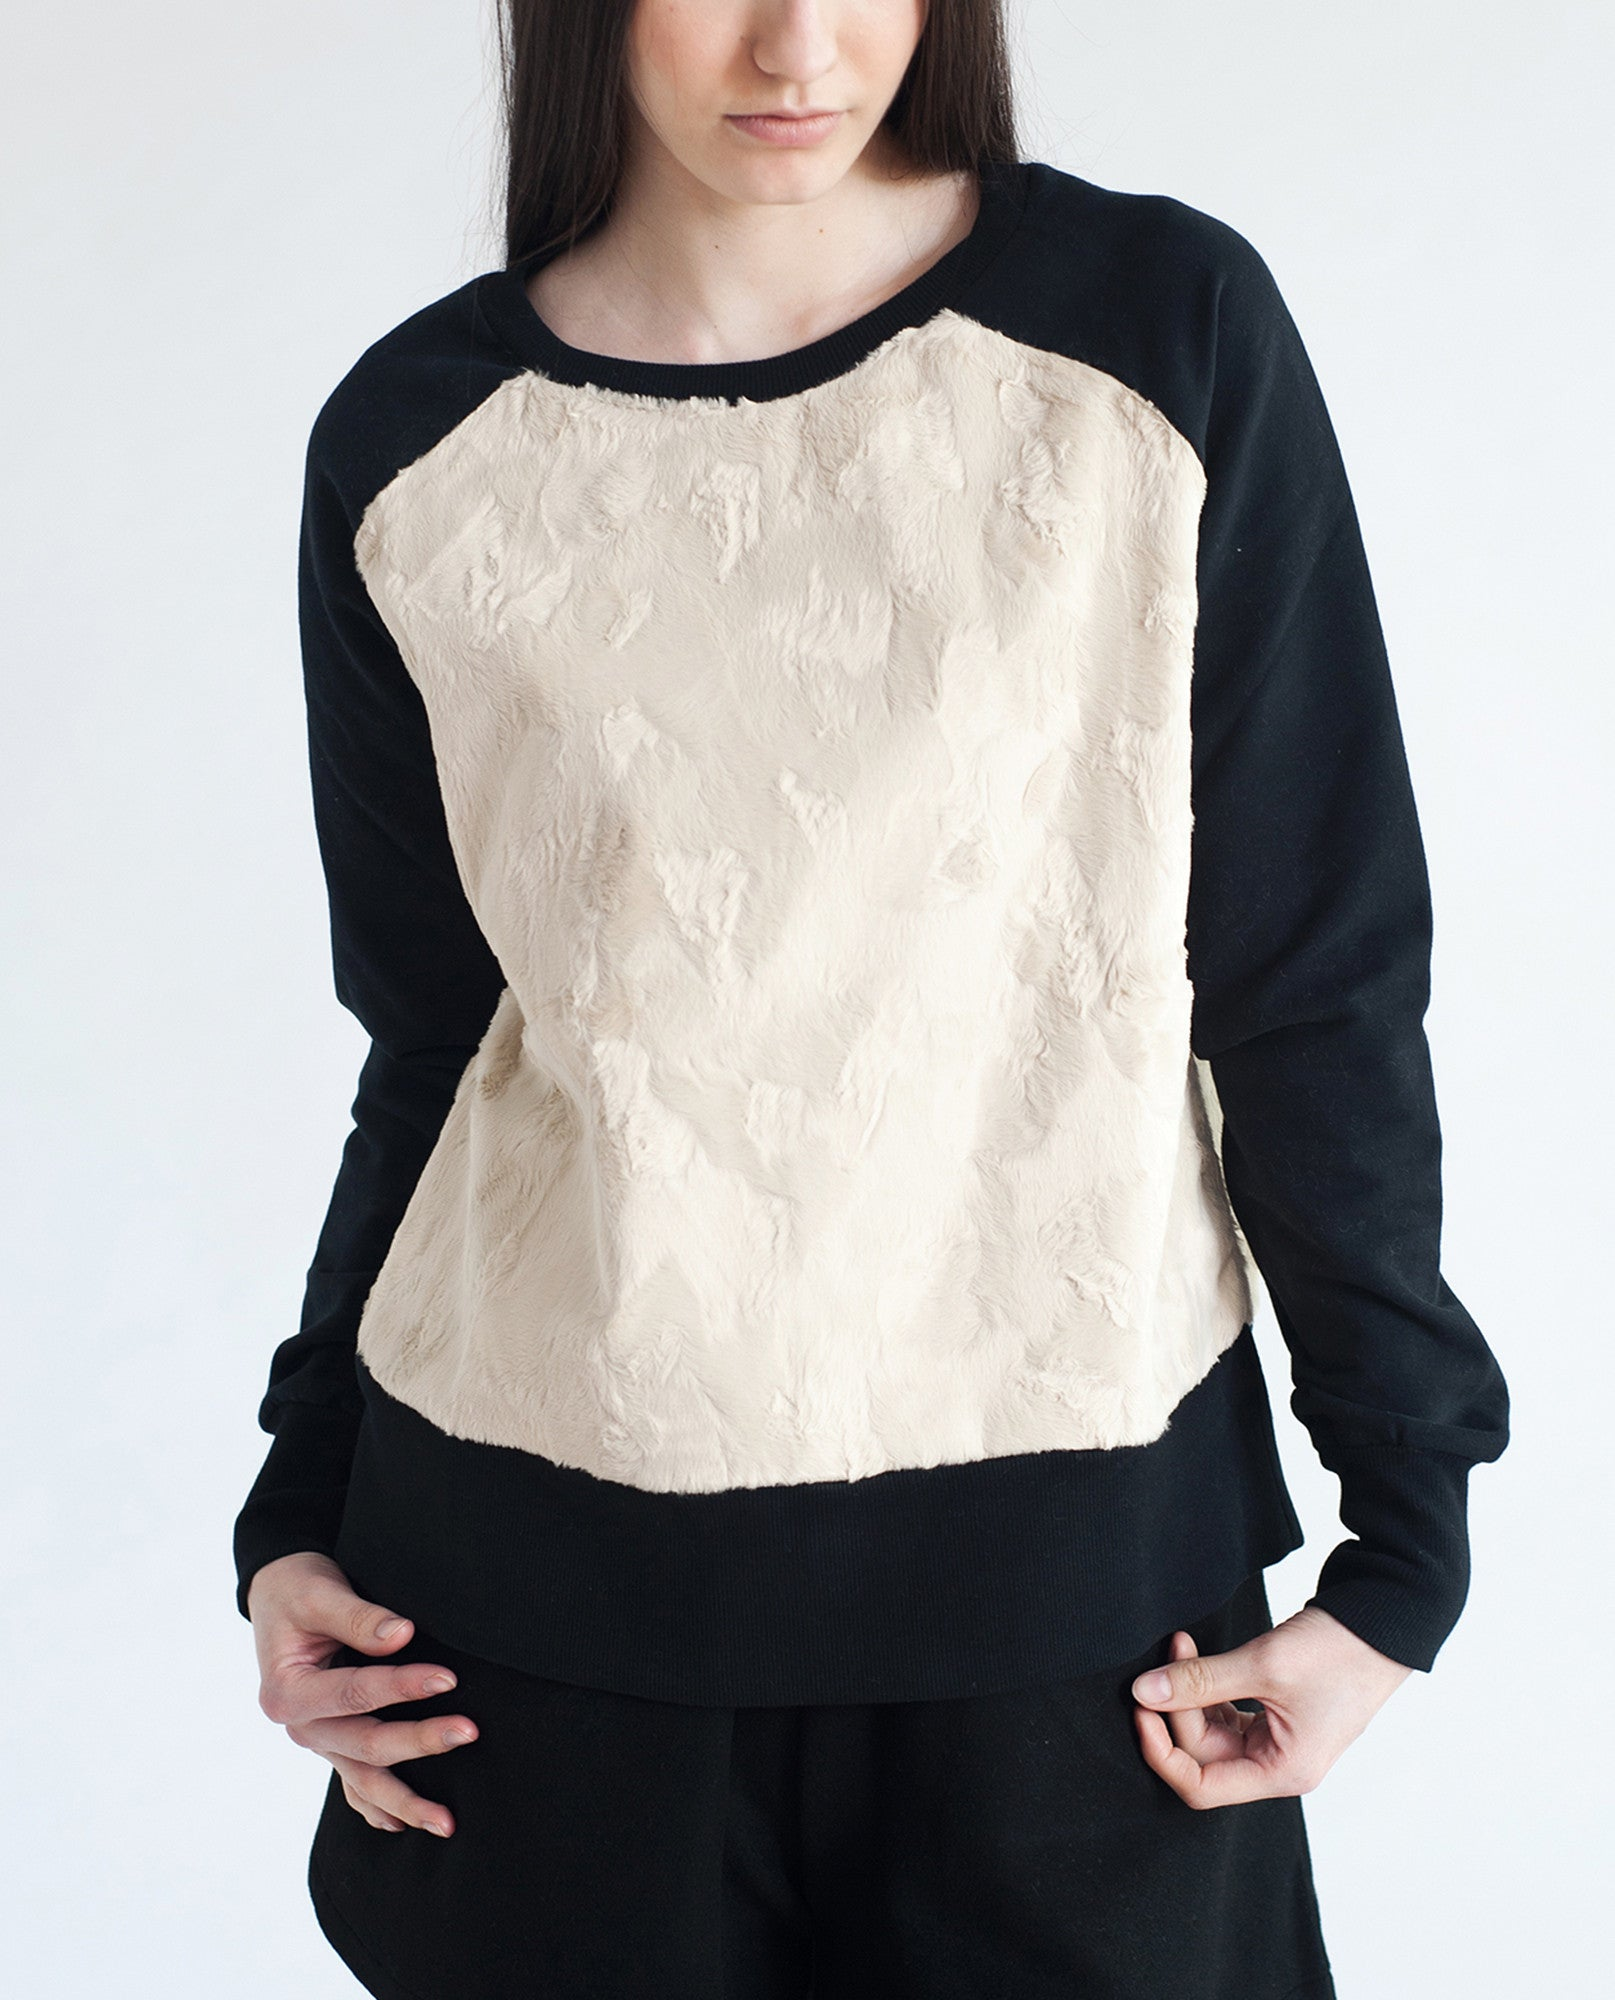 CLARA Organic Cotton And Faux Fur Sweatshirt In Black & Off White